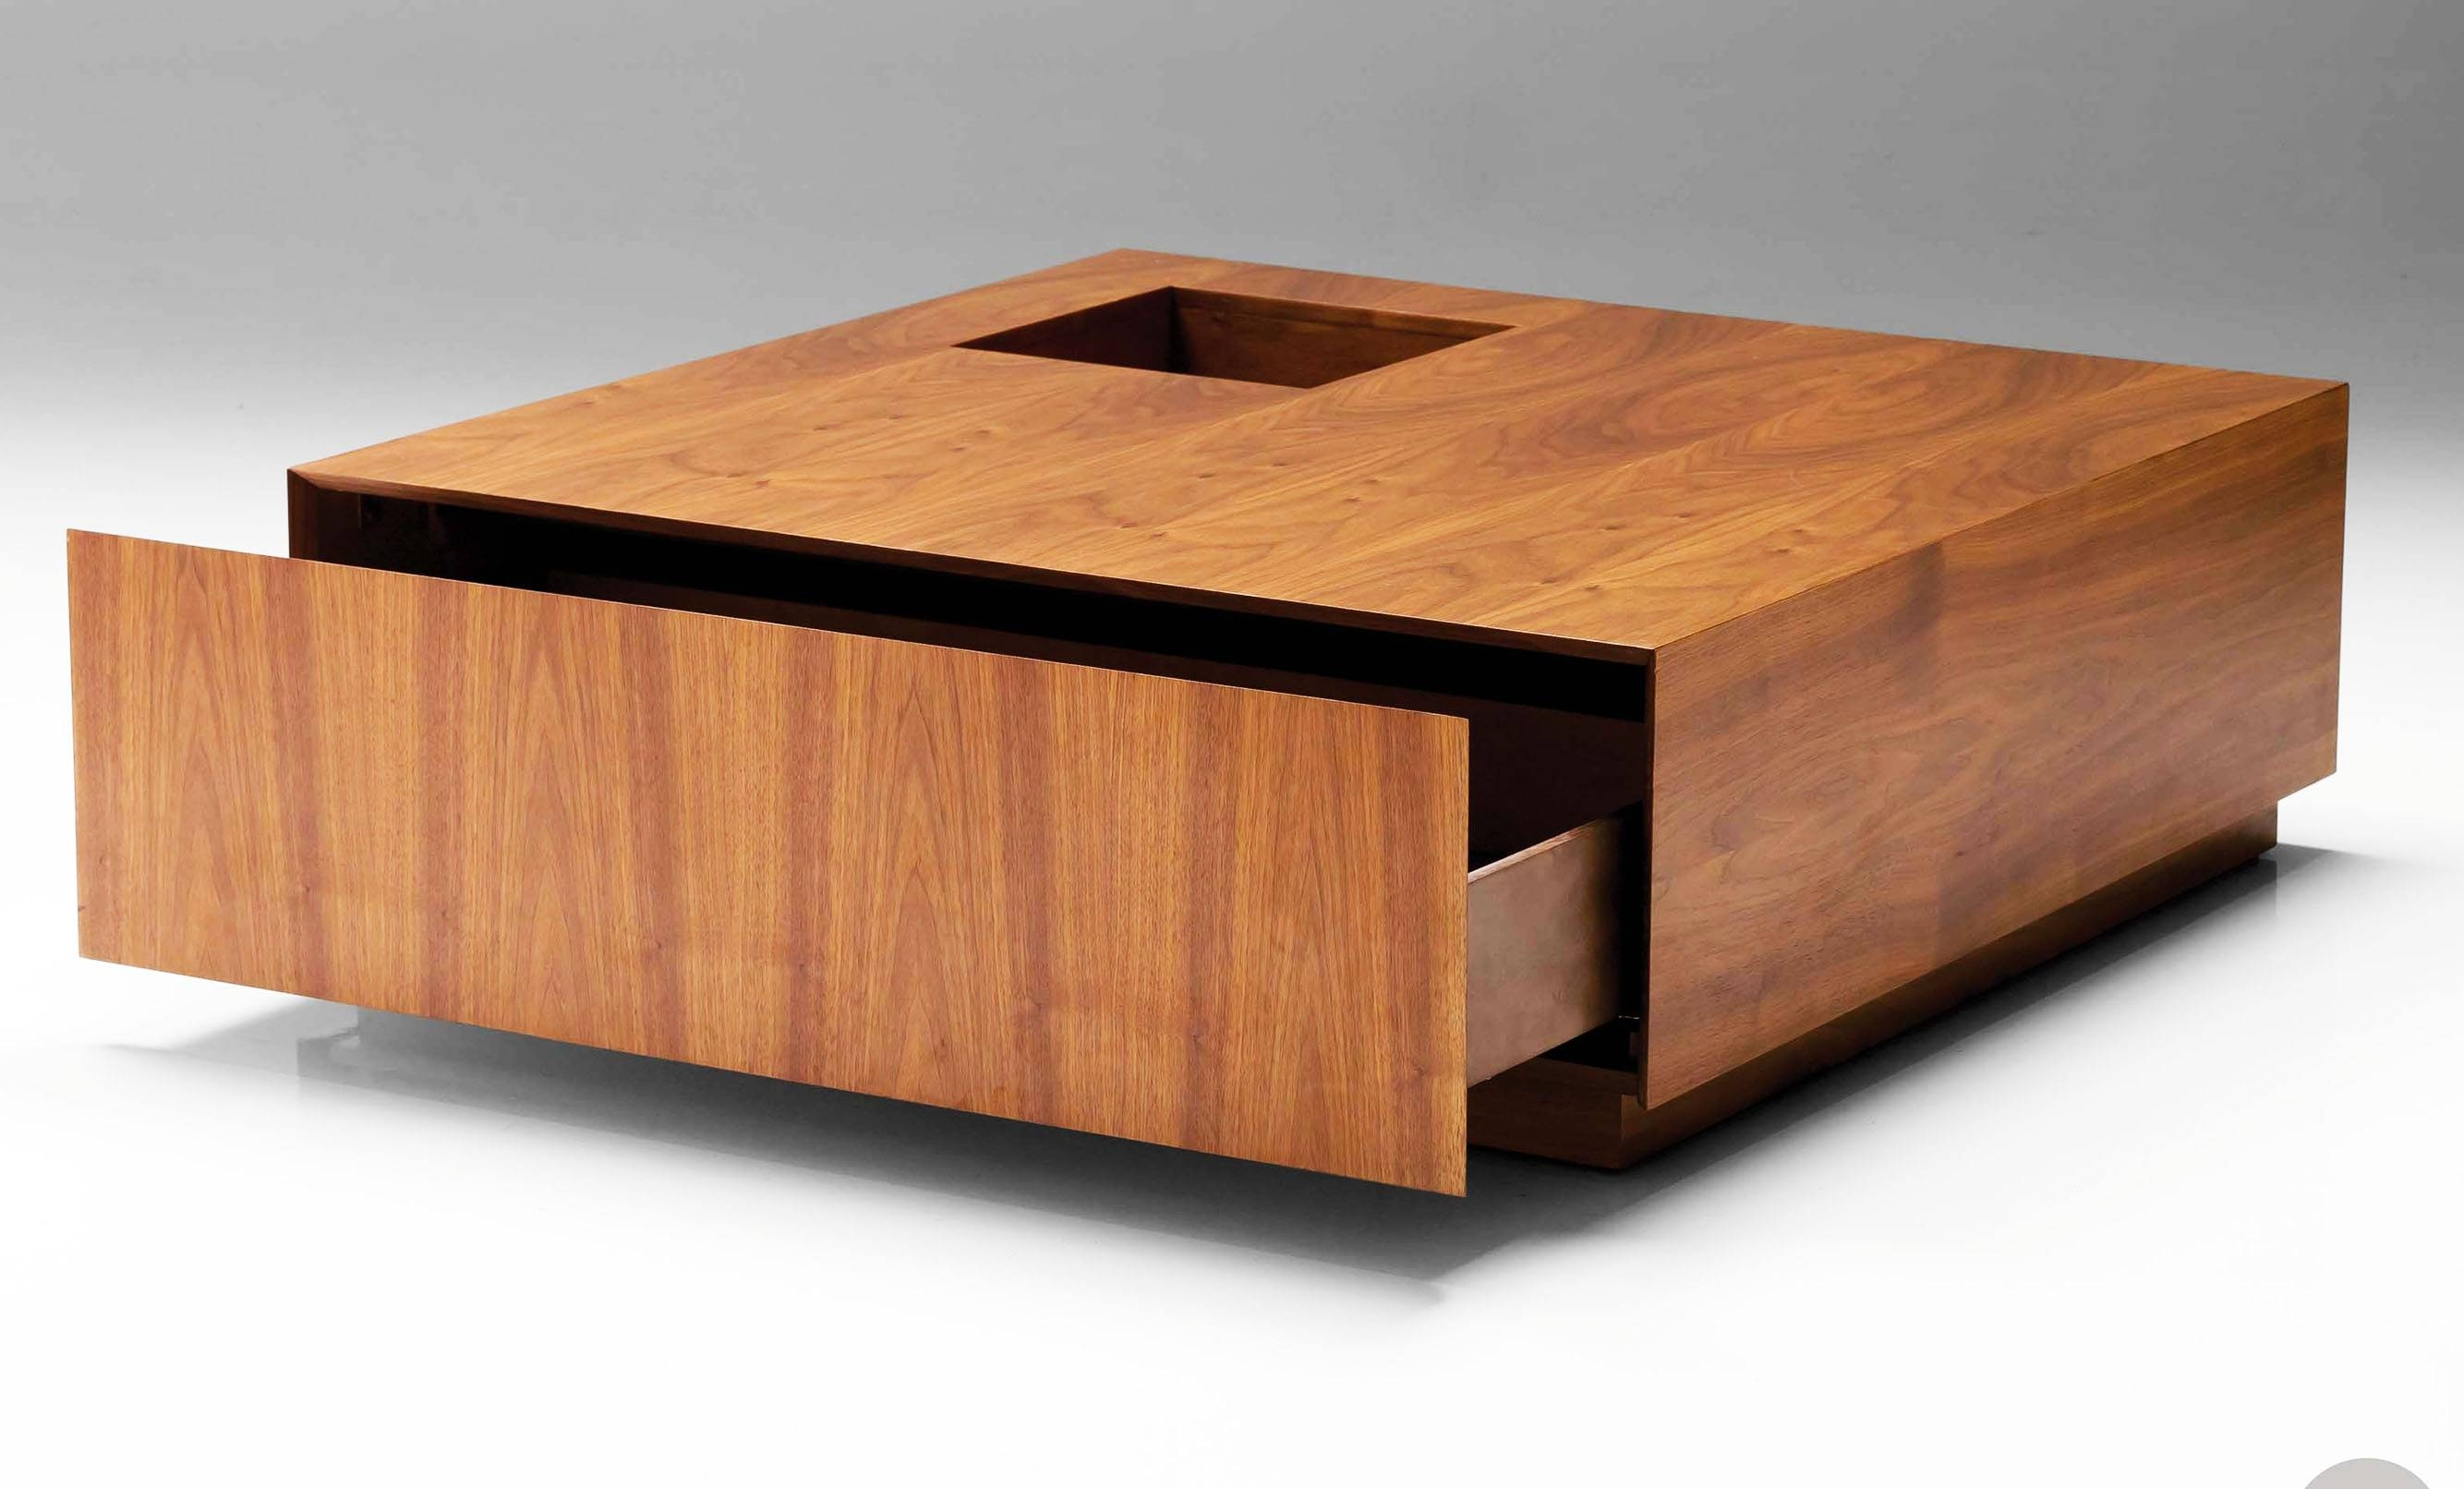 Large Square Coffee Tables | Homefurniture inside Large Square Coffee Tables (Image 18 of 30)